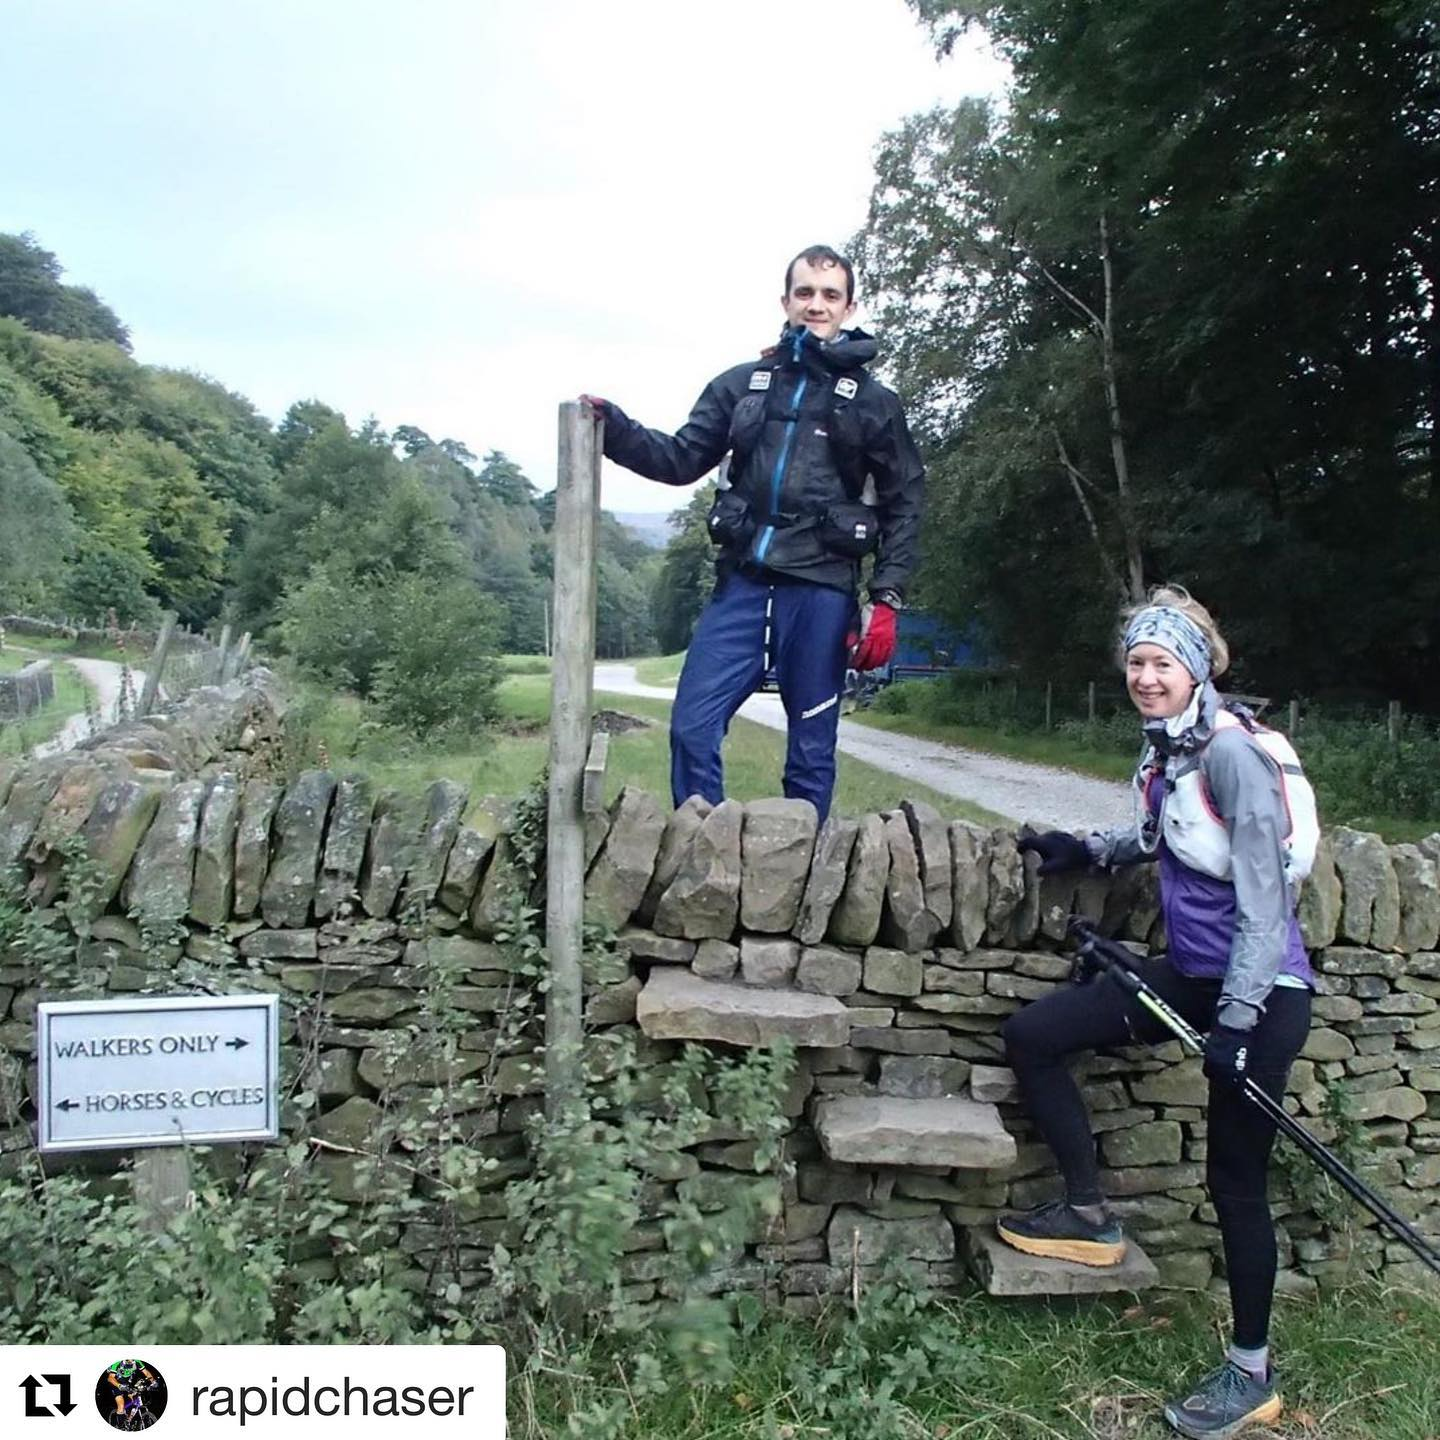 Repost from @rapidchaser with this shot from their 100km Challenge ⛰🥾⛰ #peakdistrictchallenge   A...